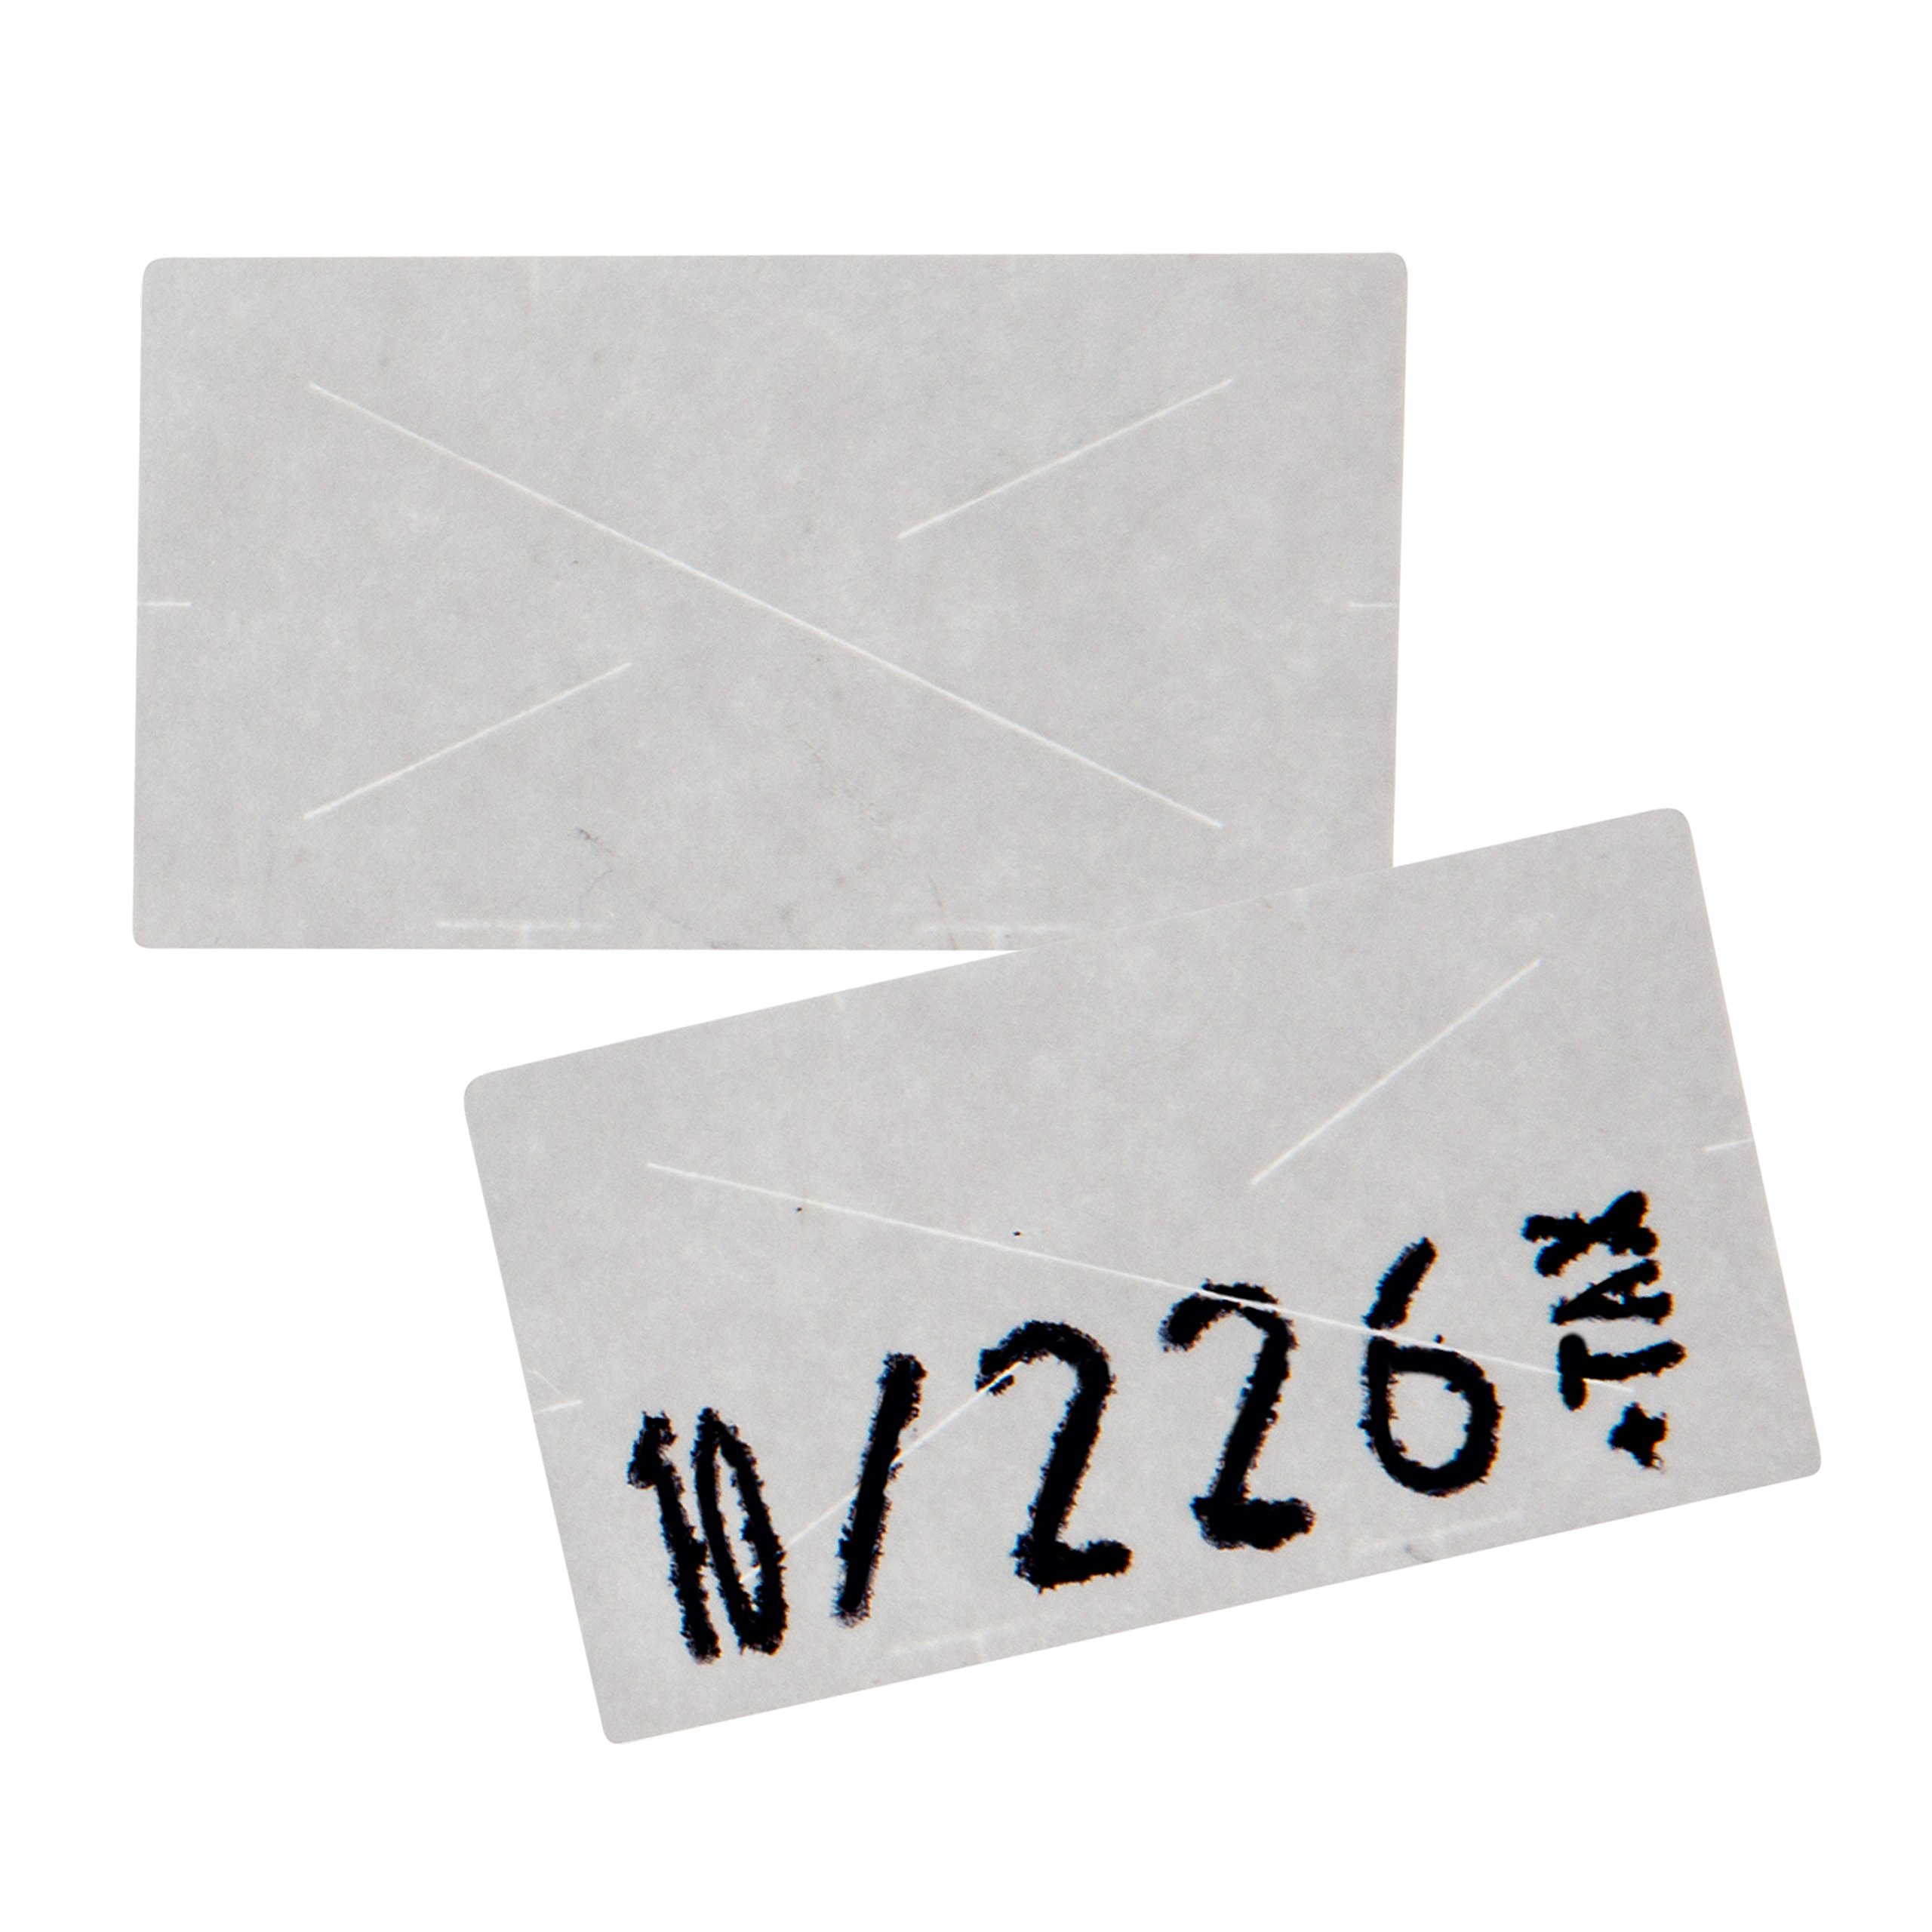 Garvey 22-6 One Line Price Marking Gun Kit: Includes Price Gun, 5,000 White Pricing Labels and Preloaded Inker by Perco (Image #3)